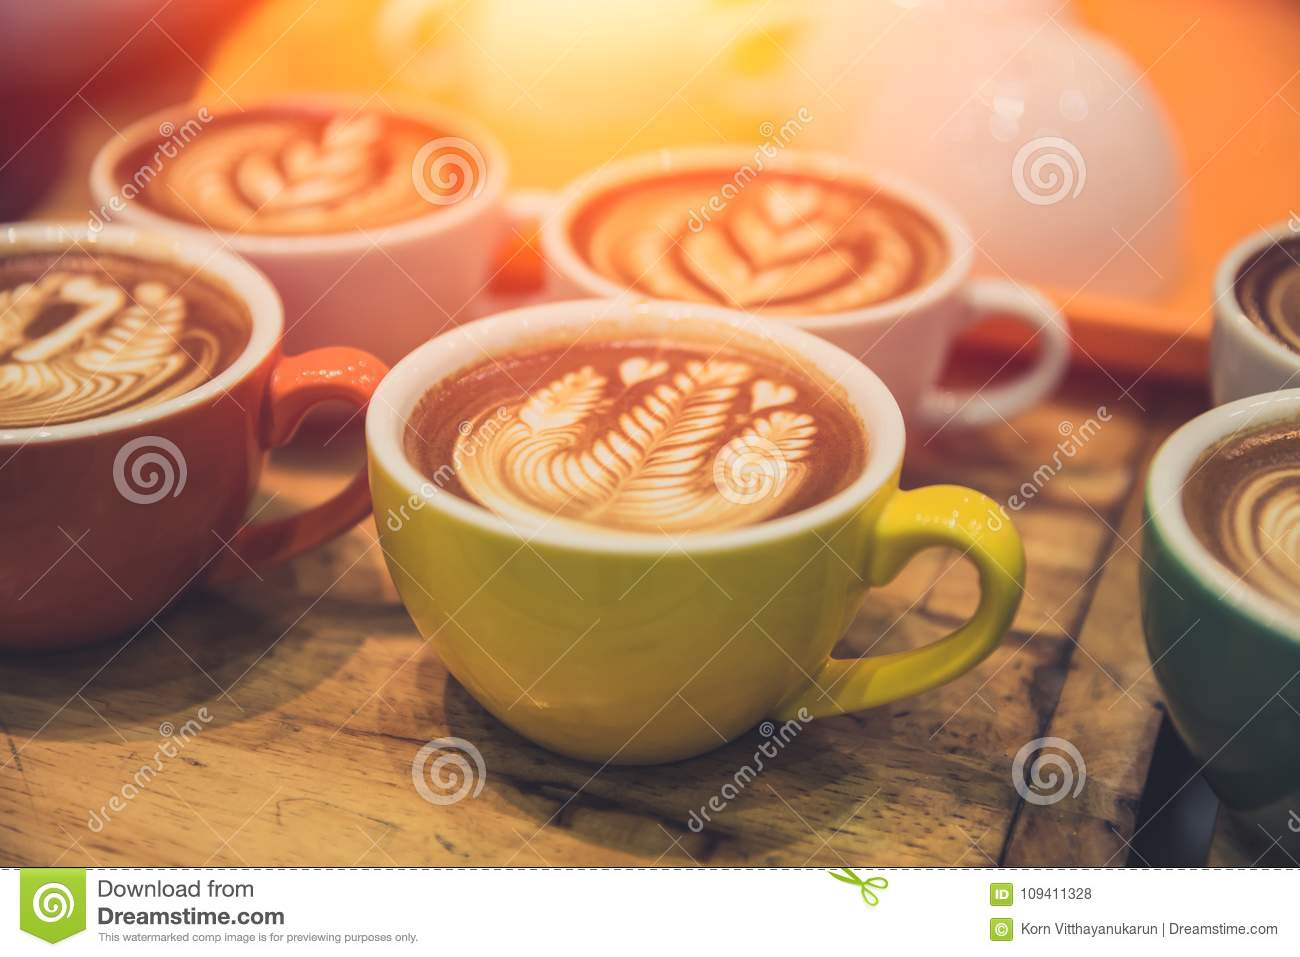 Download Coffee Latte Art Popular Hot Drink Served On Wood Table Stock Photo - Image of mocha, background: 109411328